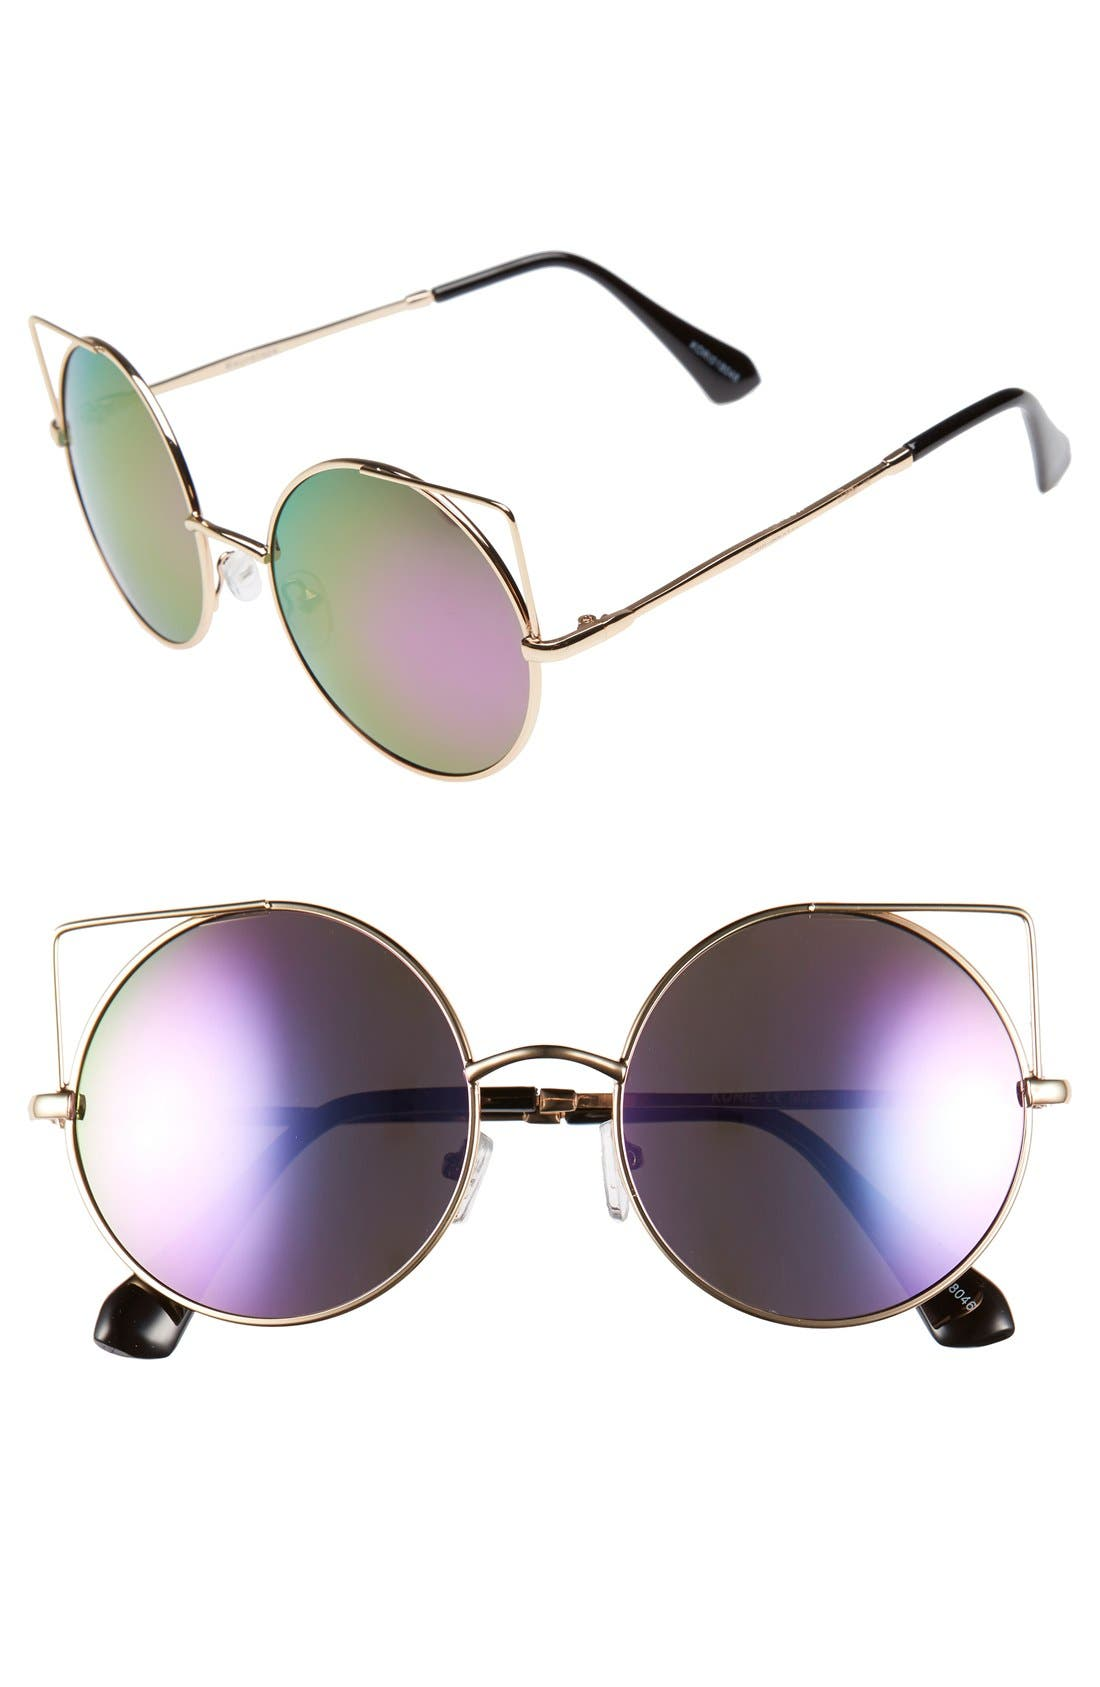 Alternate Image 1 Selected - BP. 55mm Round Mirrored Lens Sunglasses